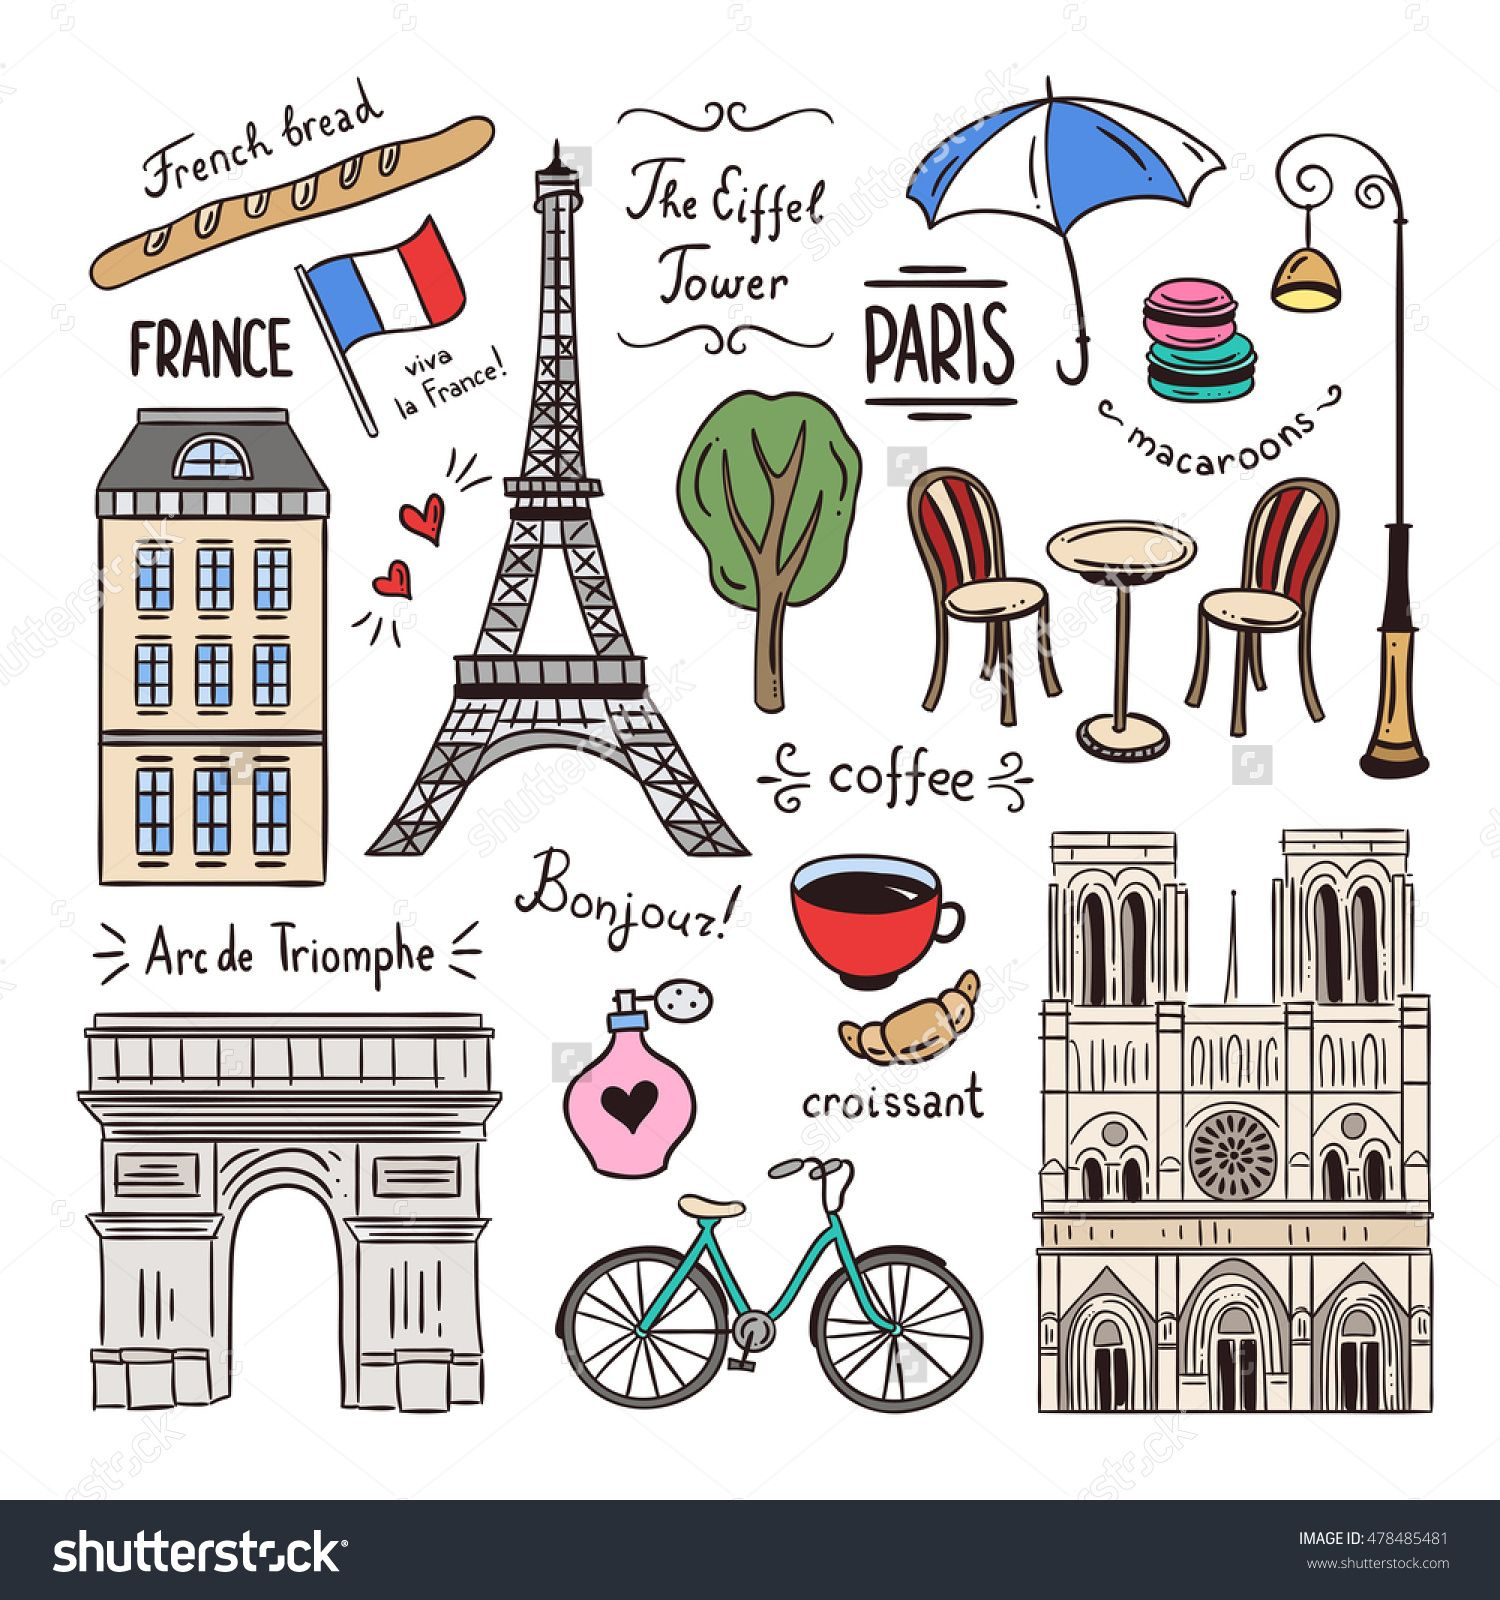 Paris hand drawn illustrations. France doodle icons and